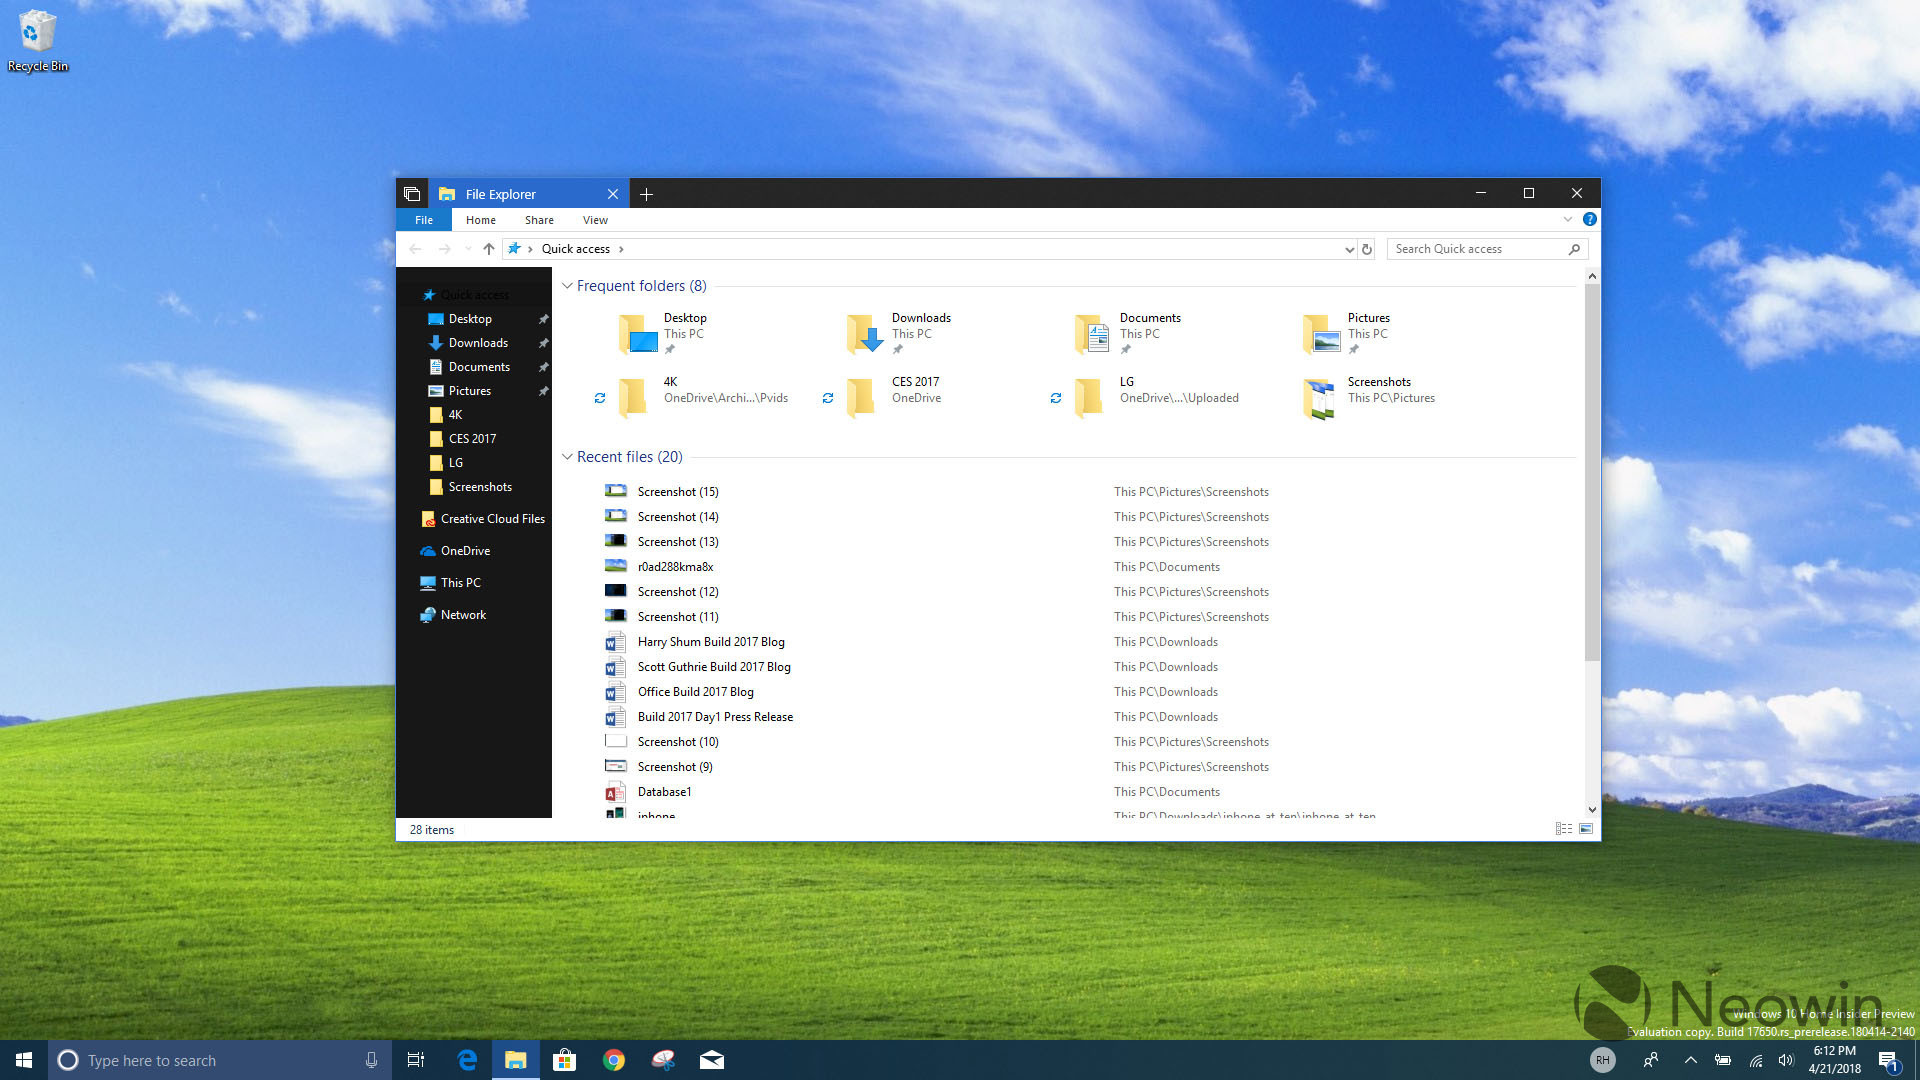 1920x1080 File Explorer is finally getting a dark theme in Windows 10 Redstone 5 -  Neowin